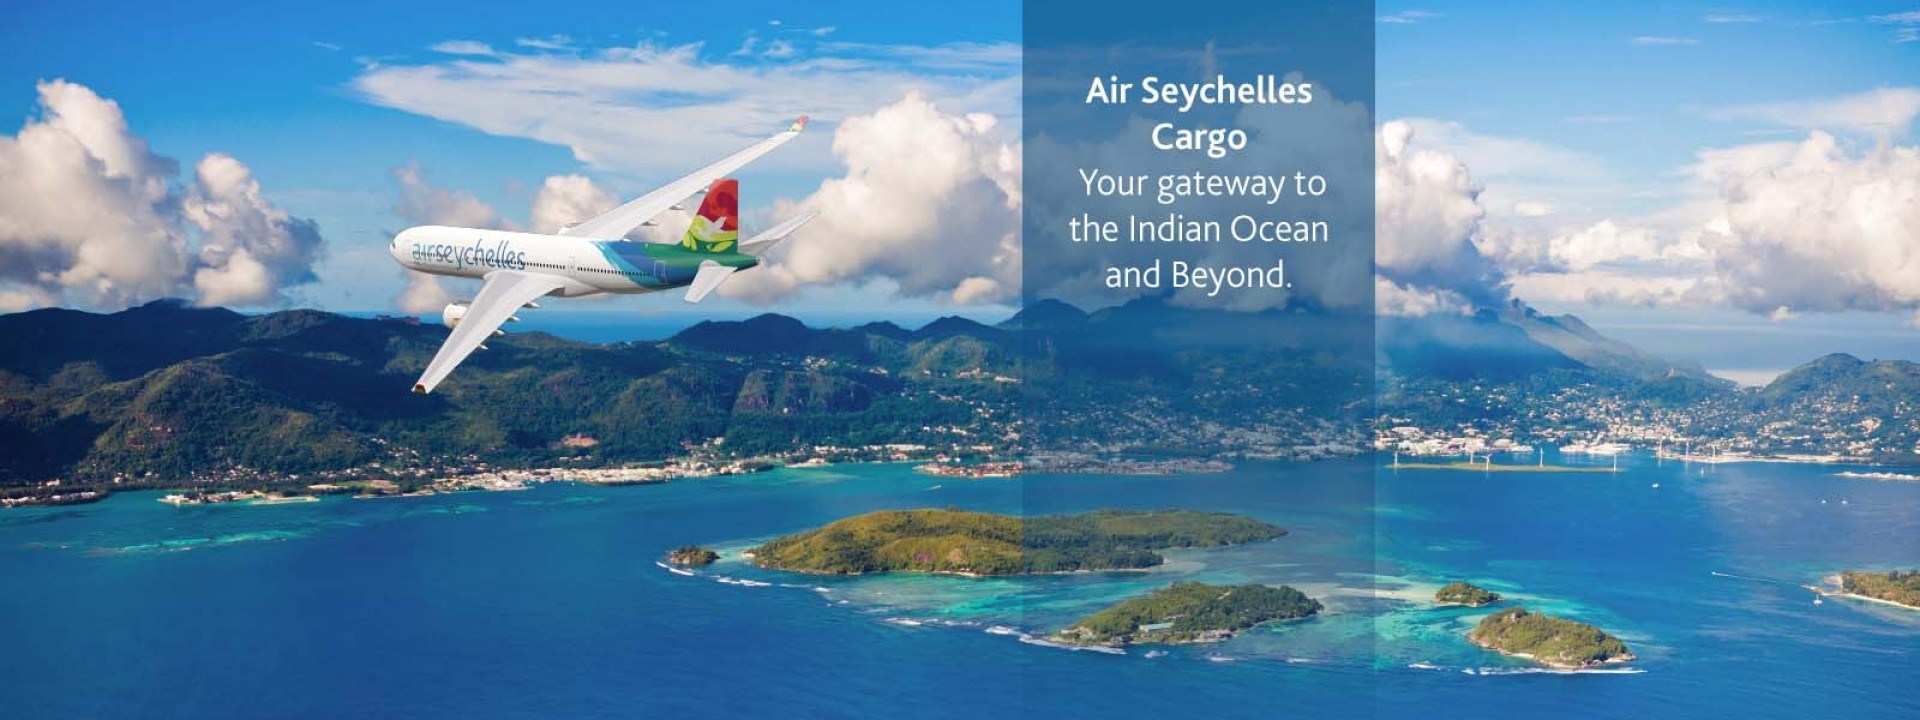 How much to fly to Seychelles